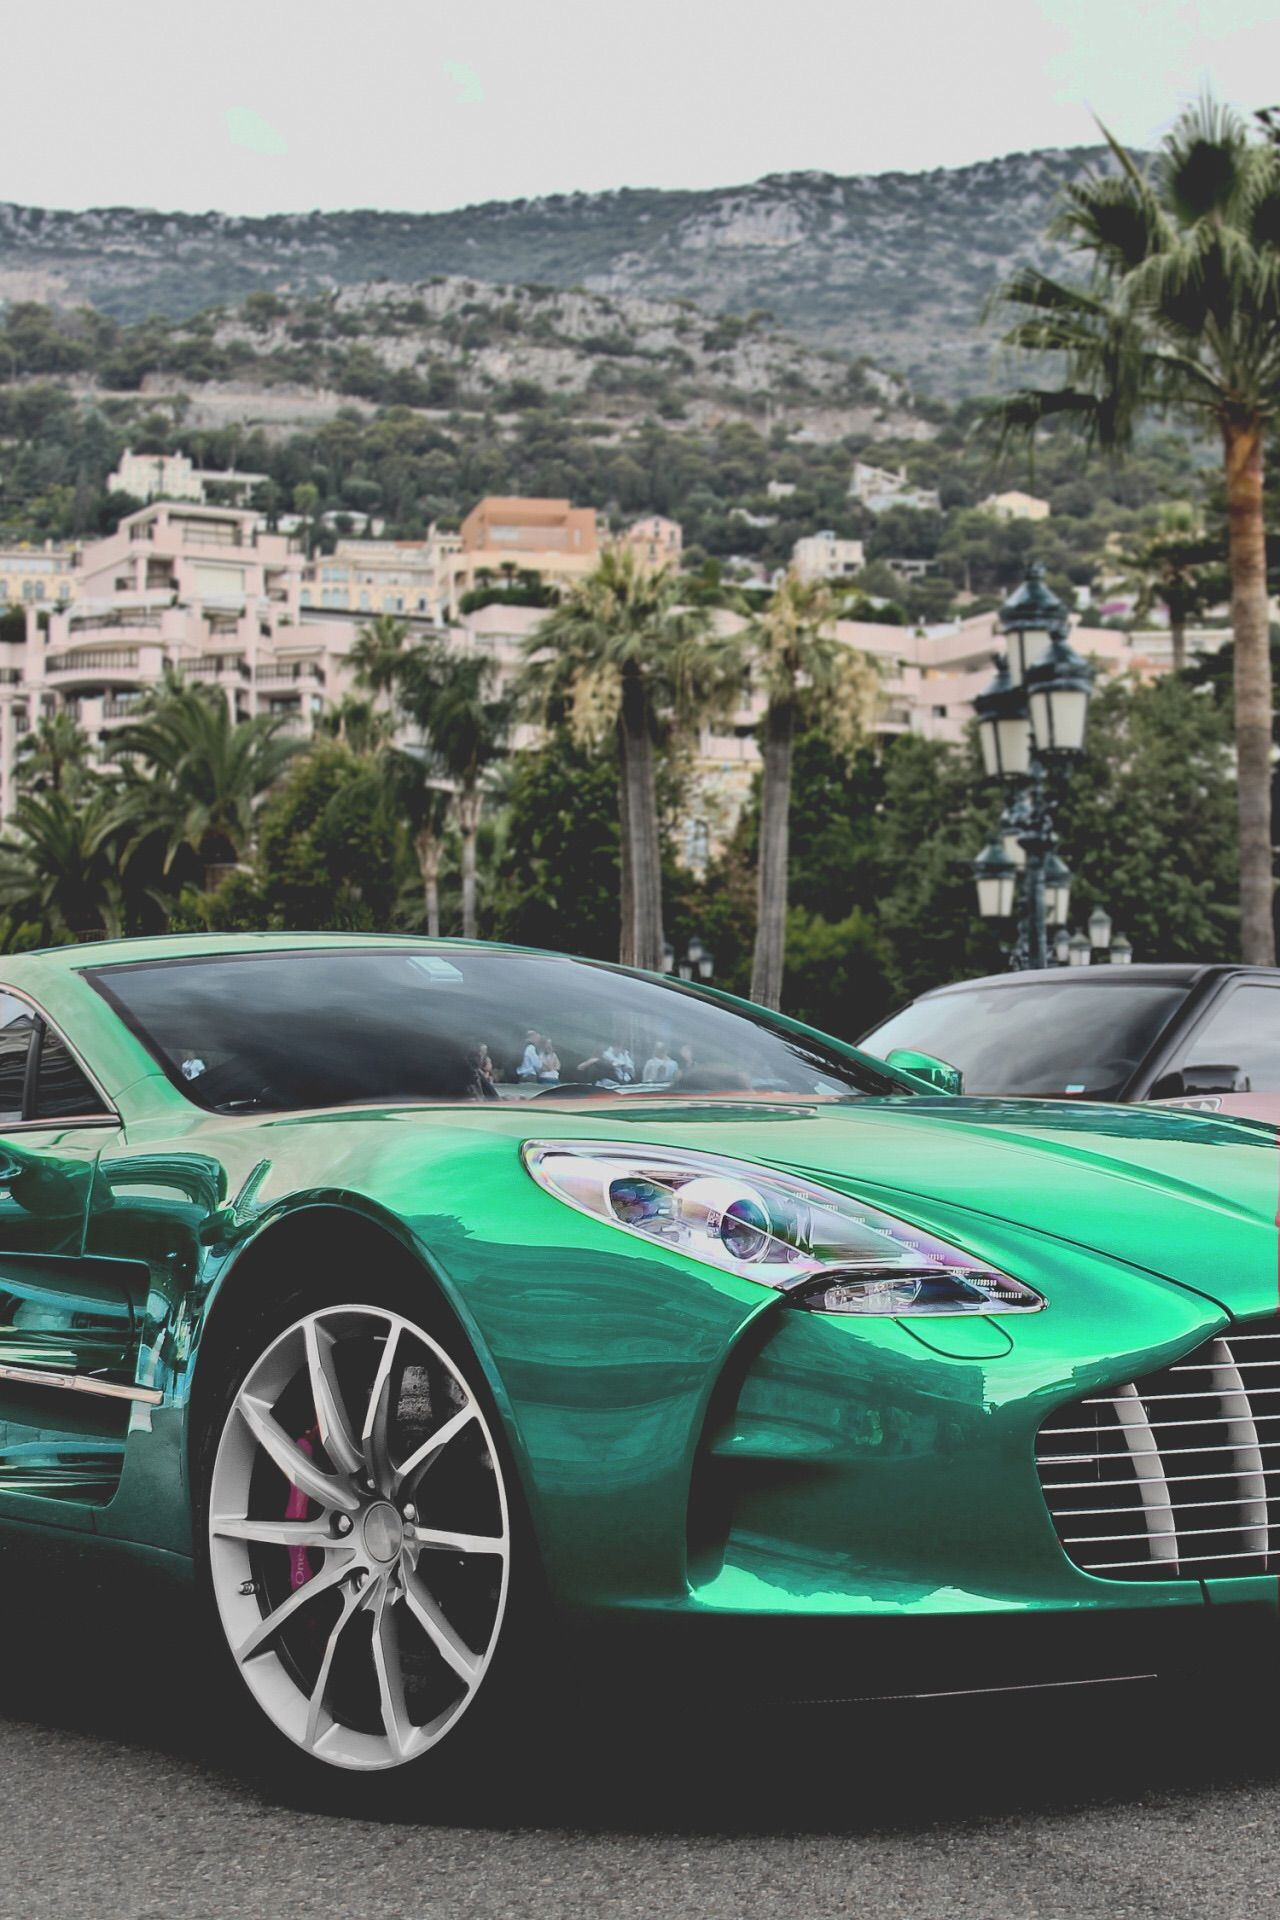 Visit The Machine Shop Cafe The Best Of Aston Martin Emerald Green Aston Martin Sports Cars Luxury Dream Cars Fancy Cars